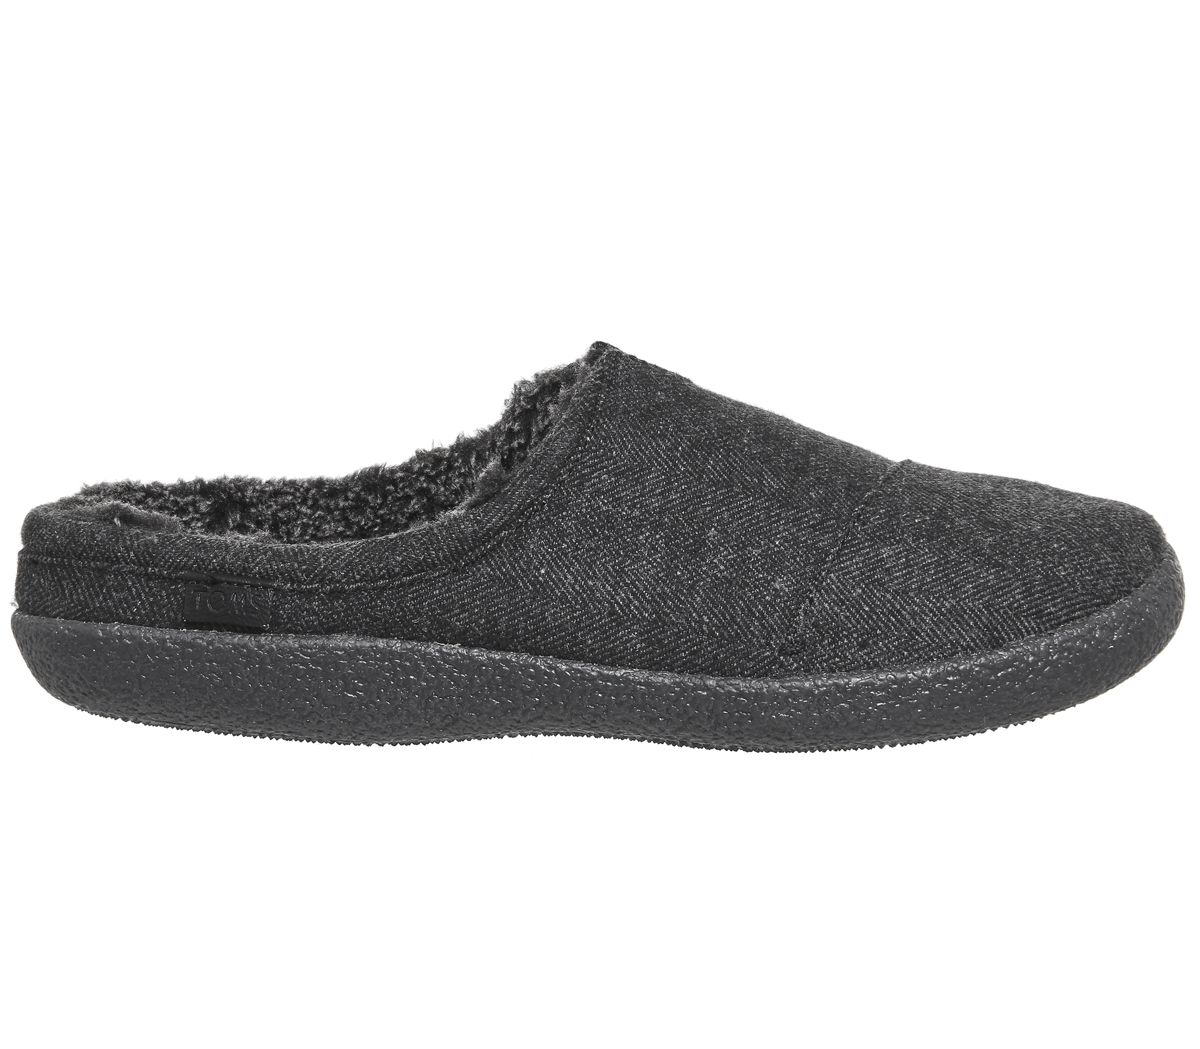 de0dcdbe3 Toms Berkeley Slippers Black Herringbone Woolen - Slippers